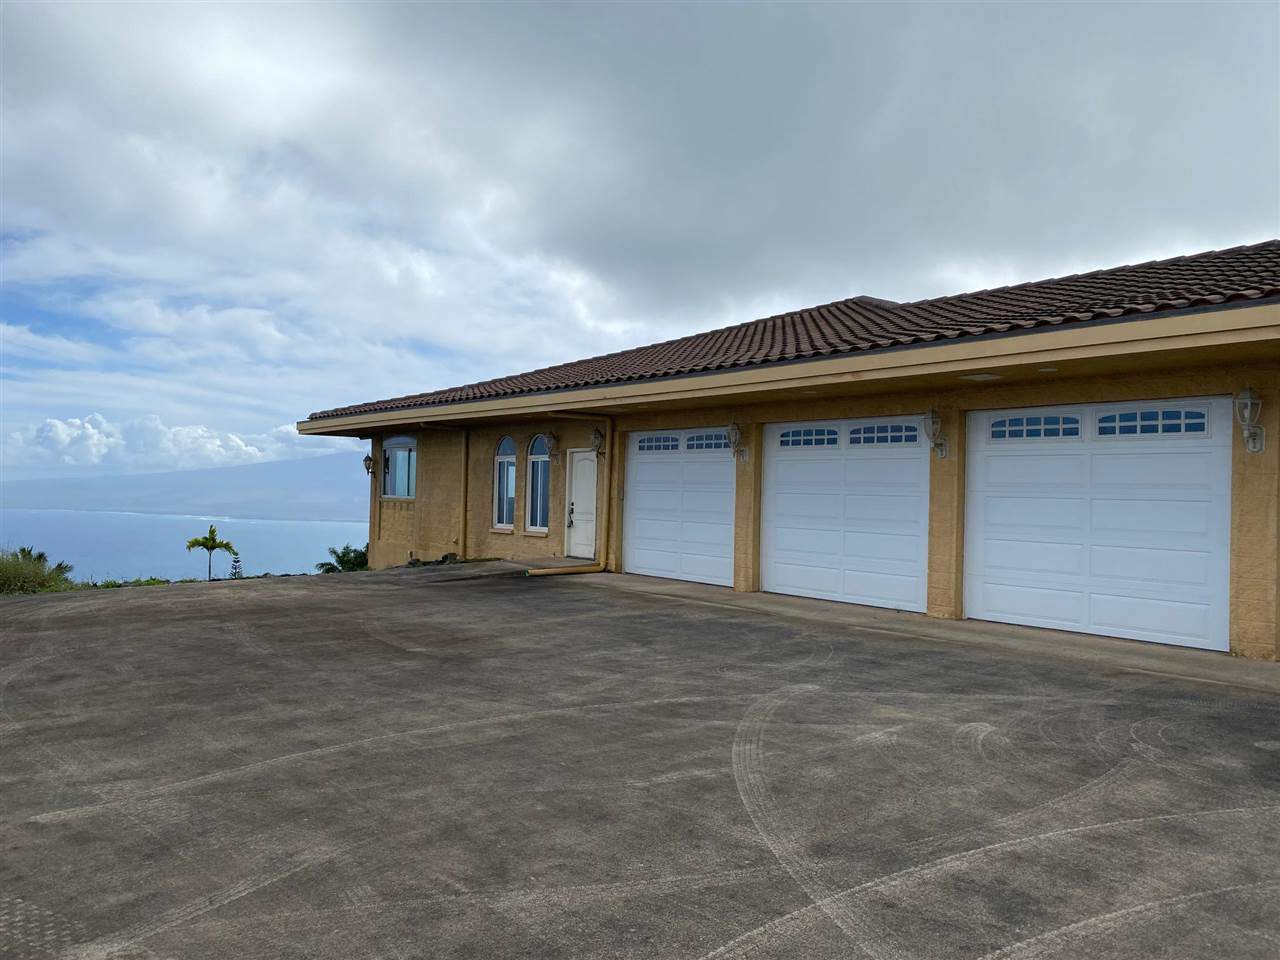 54 Hulumanu Pl - Photo 1